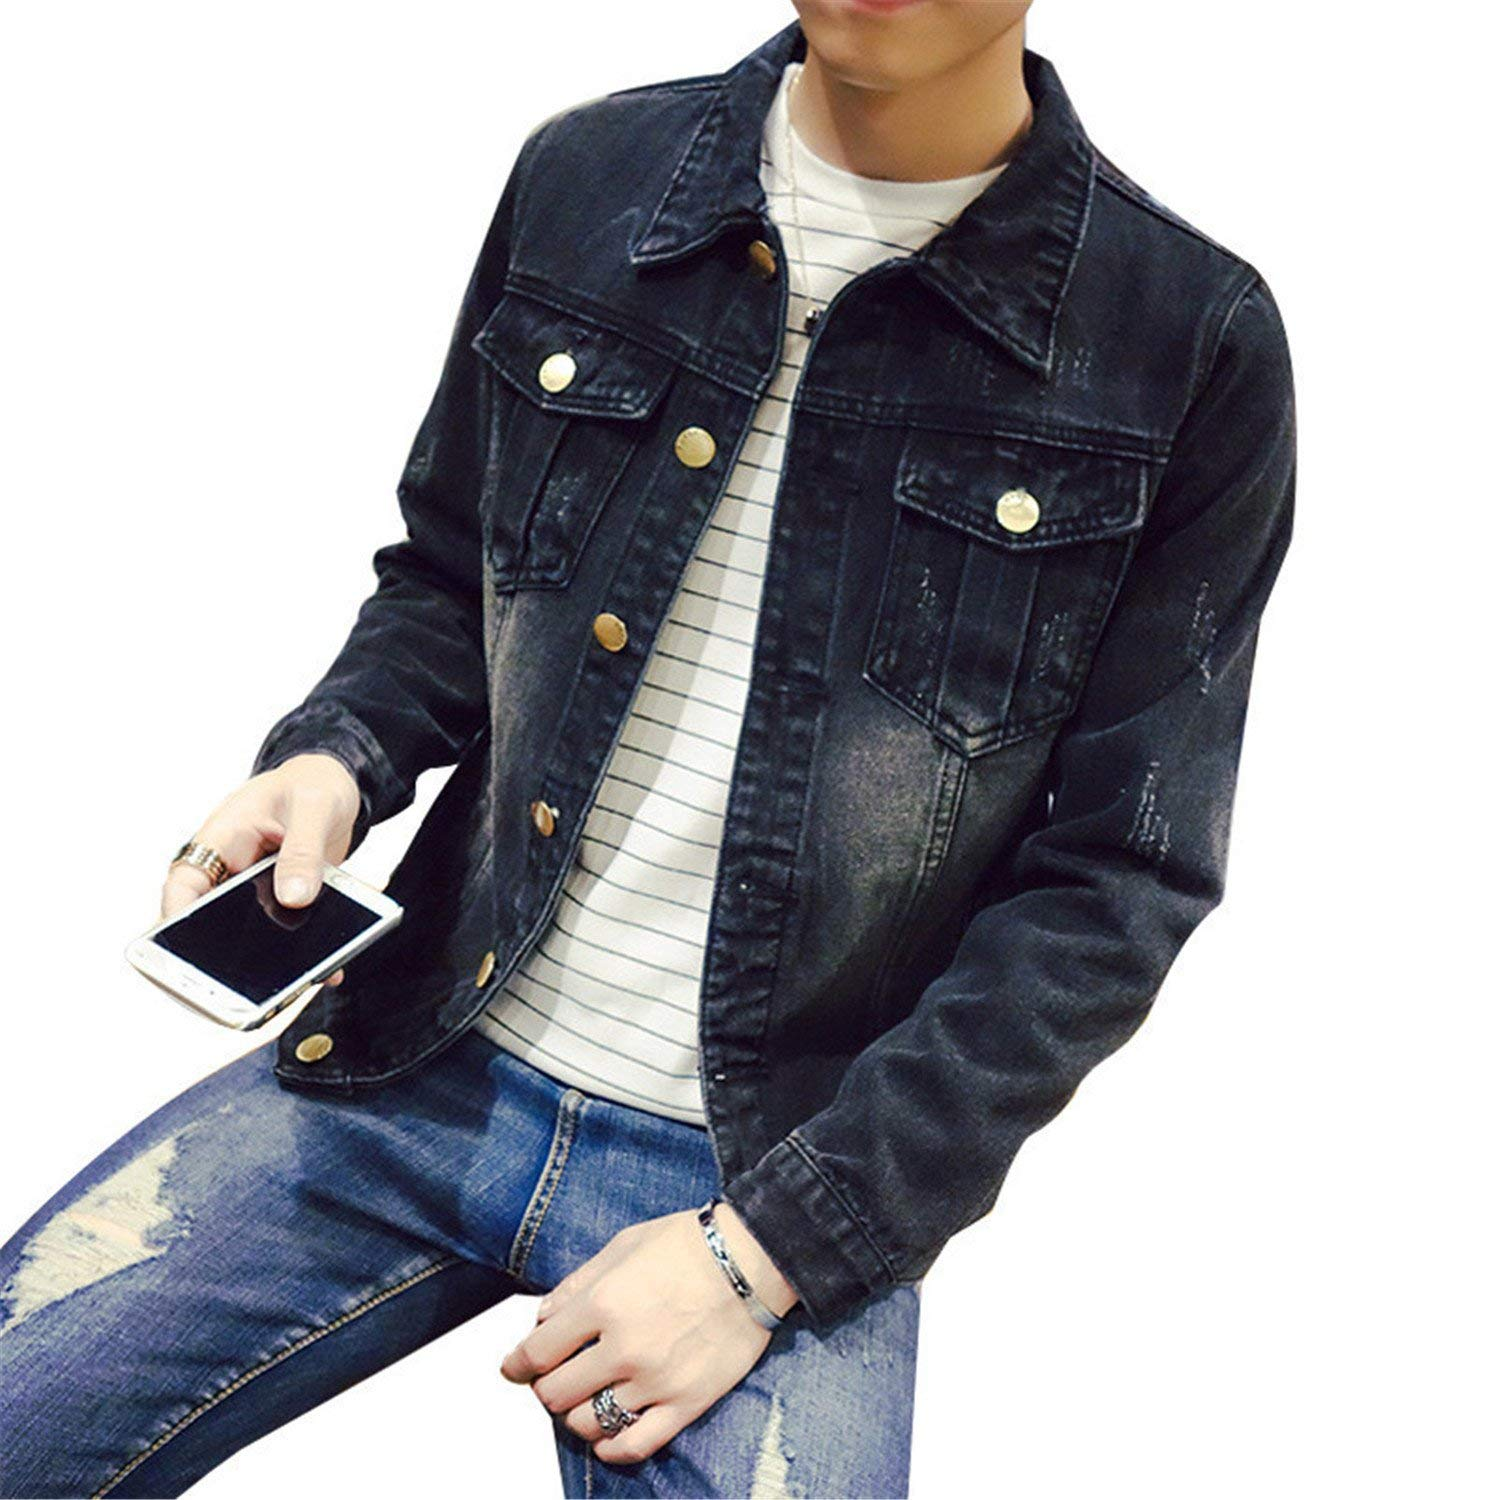 861e78f390b Get Quotations · Chiffoned Solid Casual Slim Mens Denim Jacket Plus Size S-4XL  5XL Jacket Men Cowboy